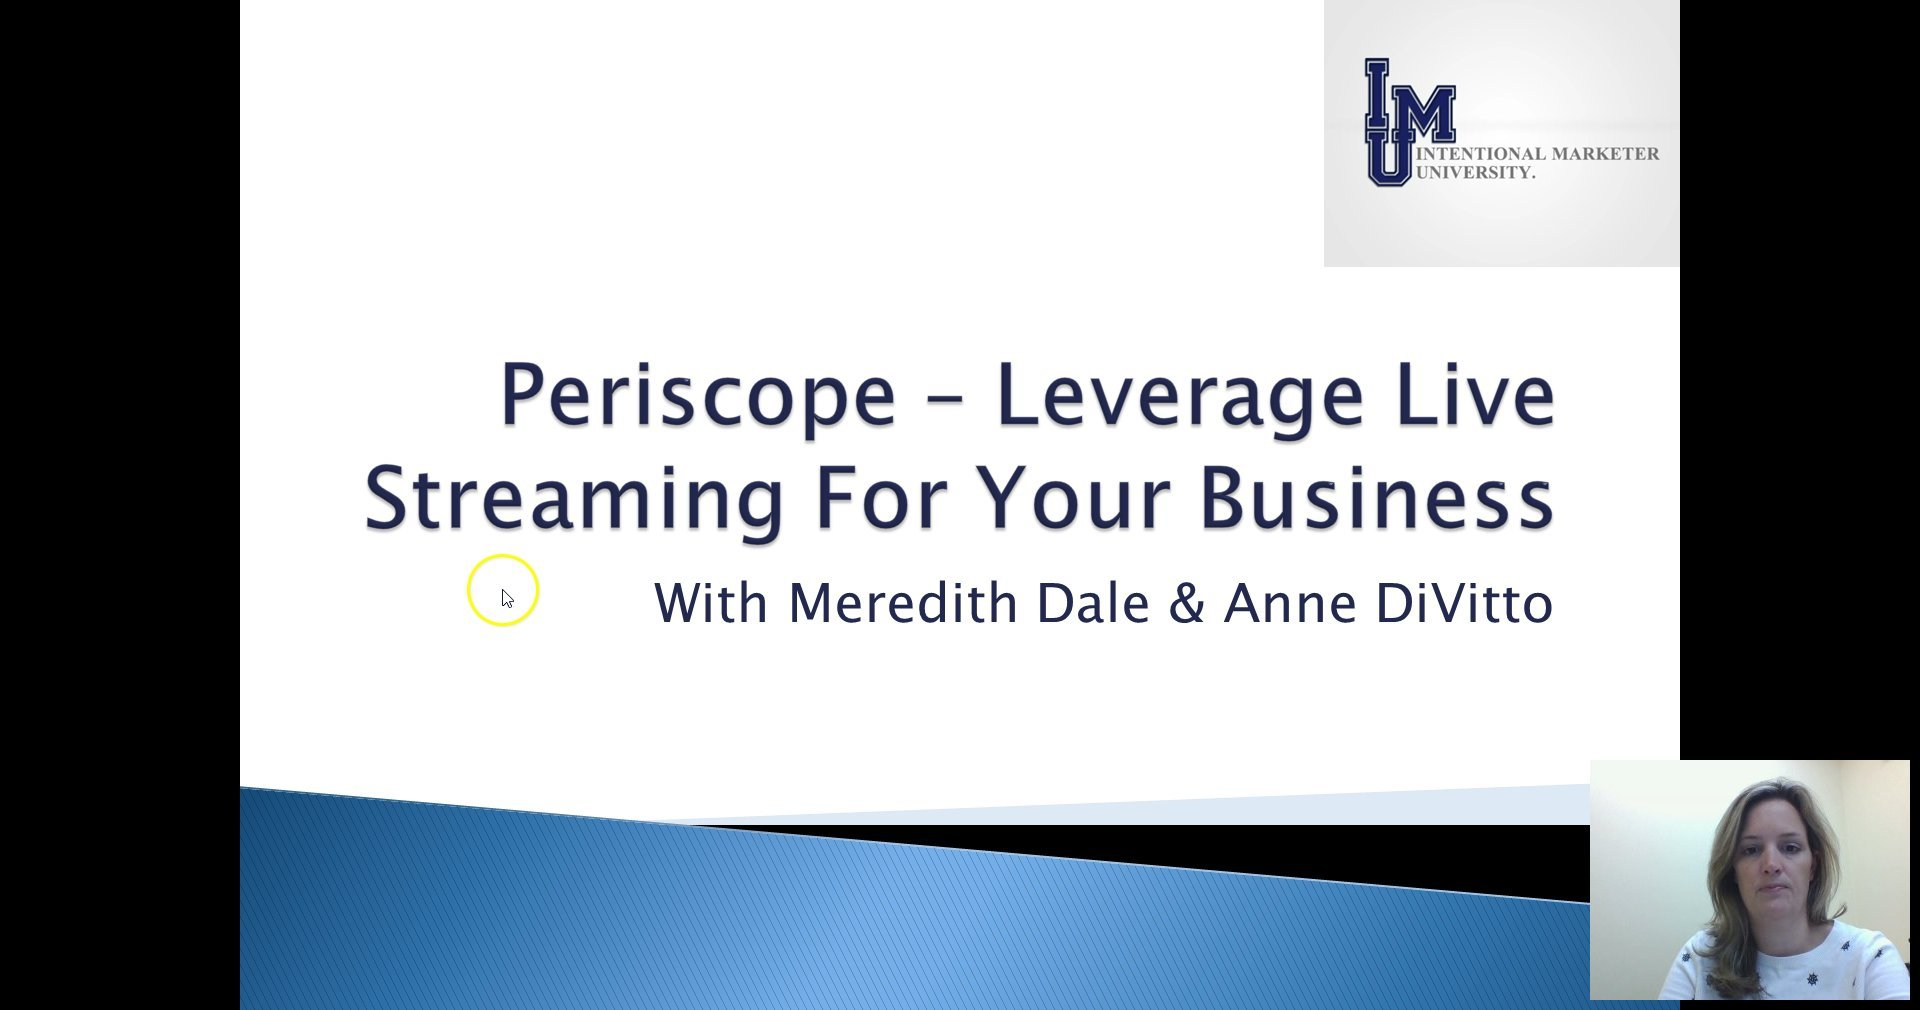 [Screencast: Periscope - Live Streaming For Your Business]